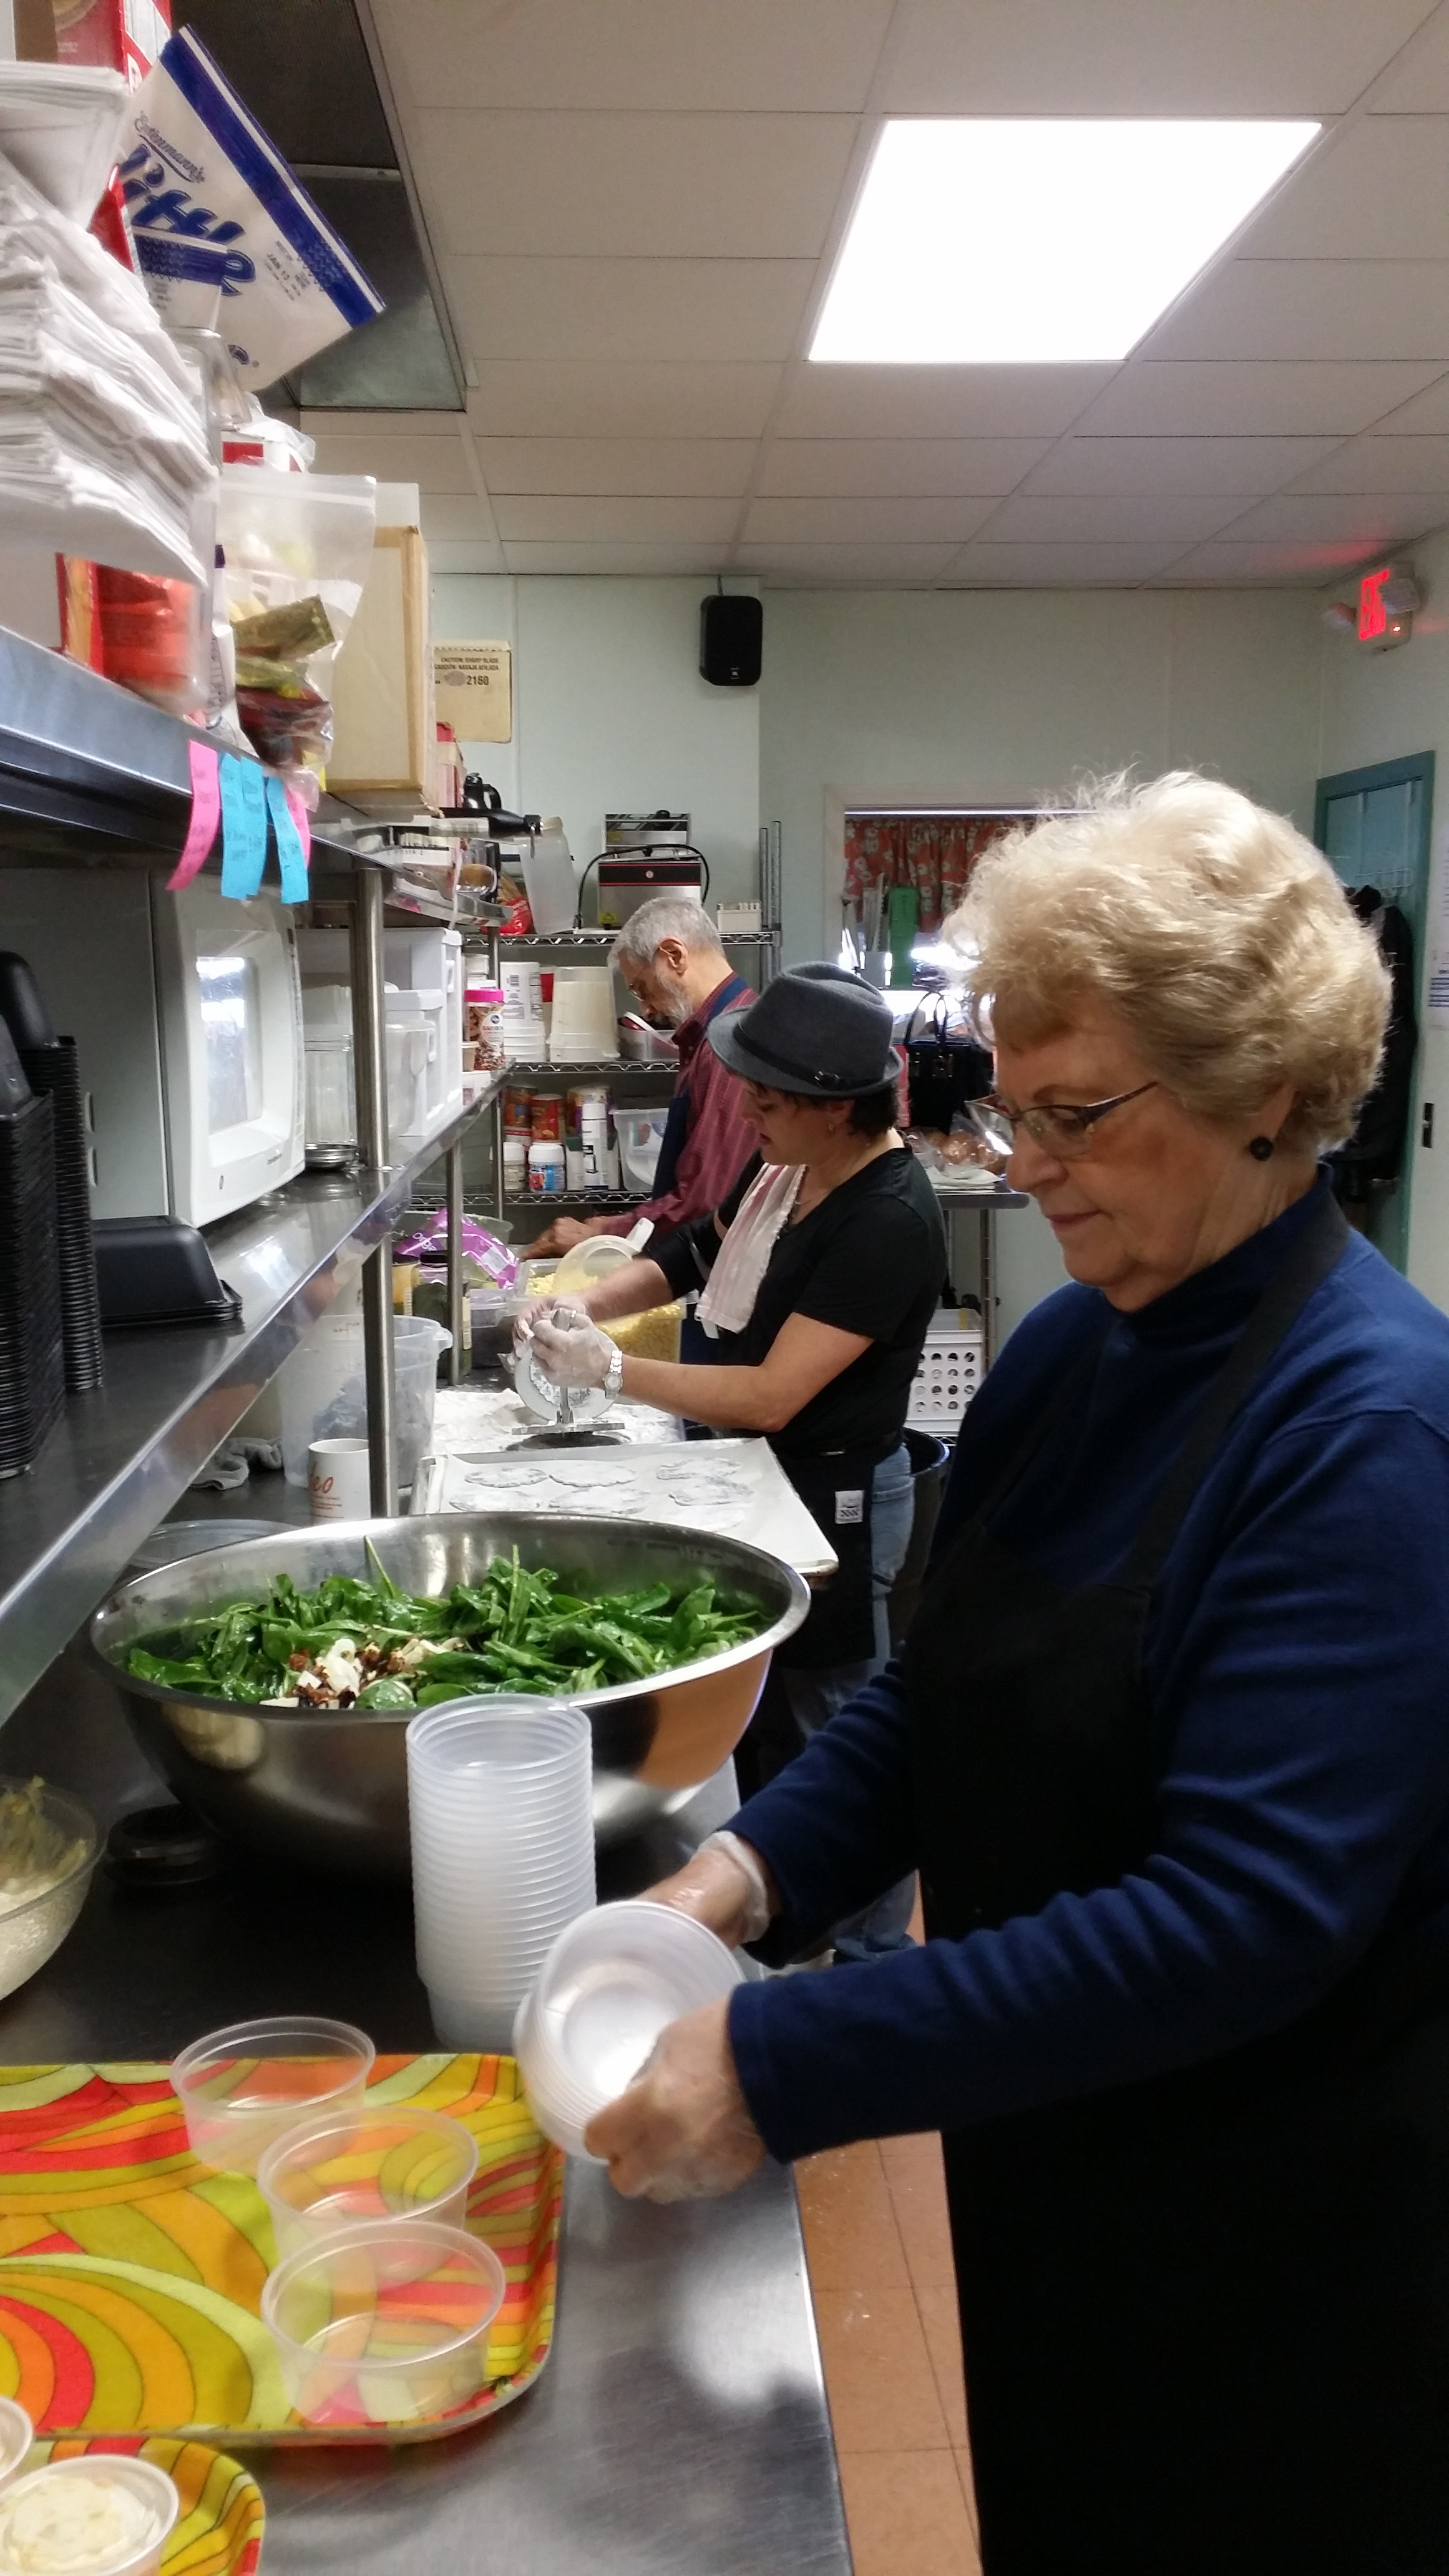 Kitchen staff preparing lunches for our Meals on Wheels program.